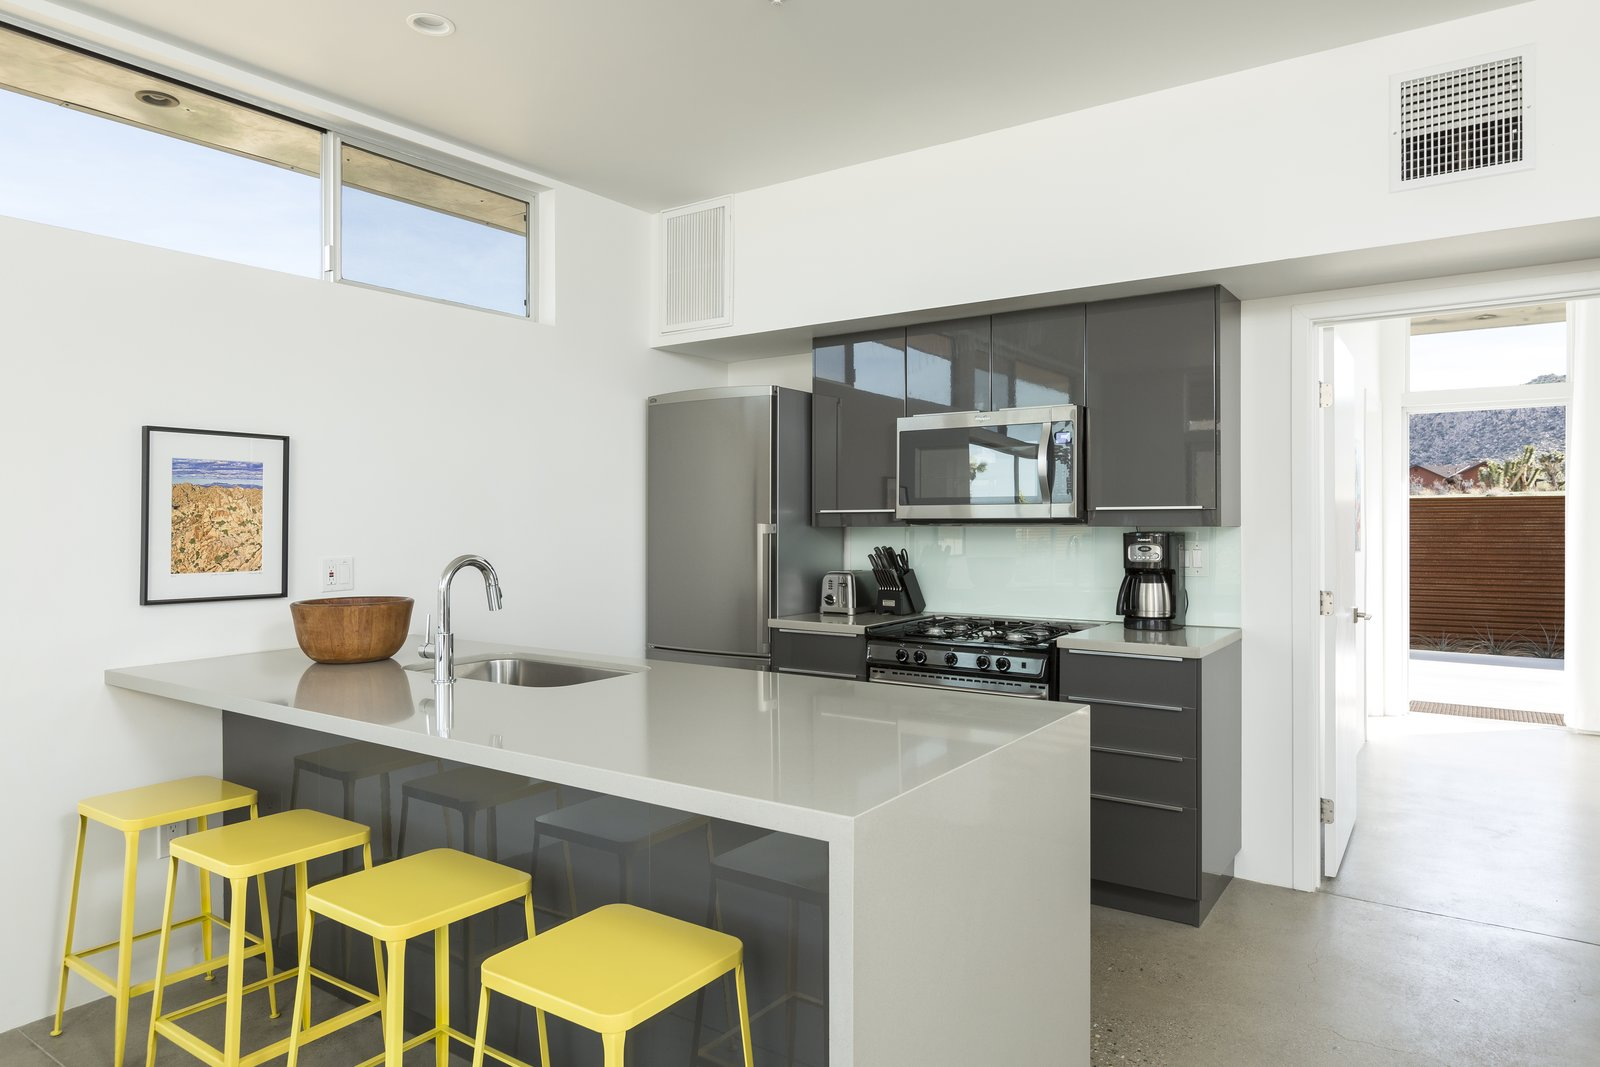 Kitchen, Concrete Floor, Refrigerator, Recessed Lighting, Microwave, Range, Wall Oven, and Undermount Sink Sleek, modern kitchen area of the main home  Photo 4 of 10 in This Modern Homestead With a Vintage Trailer Offers Adventure in California's High Desert